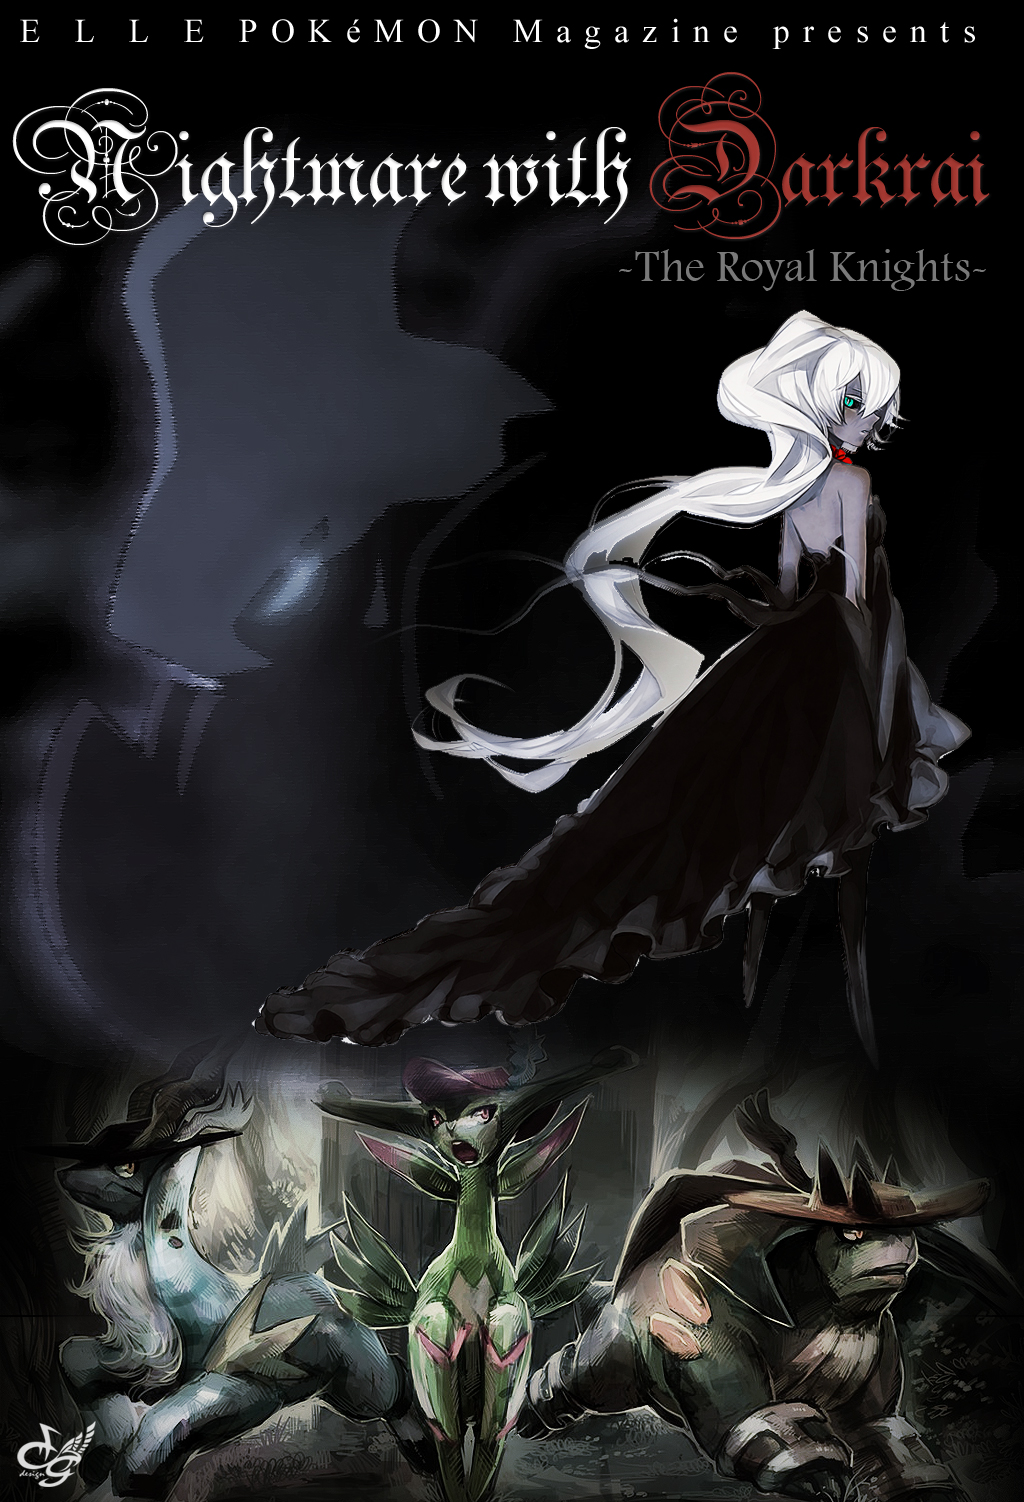 """Nightmare With Darkrai"" -The royal Knights-: Hypocrisy"